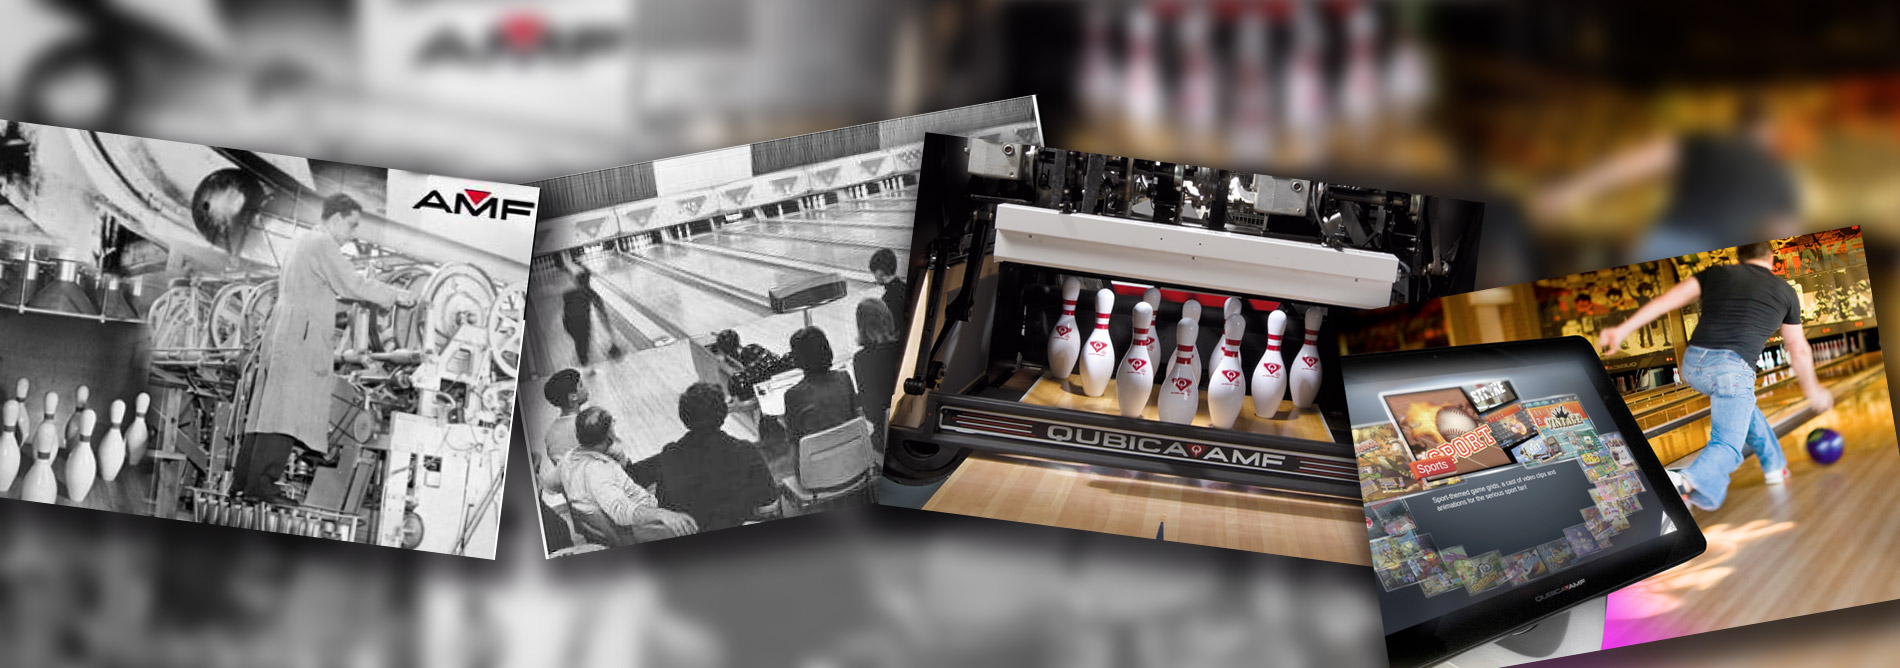 qubicaamf-company-bowling-History.jpg